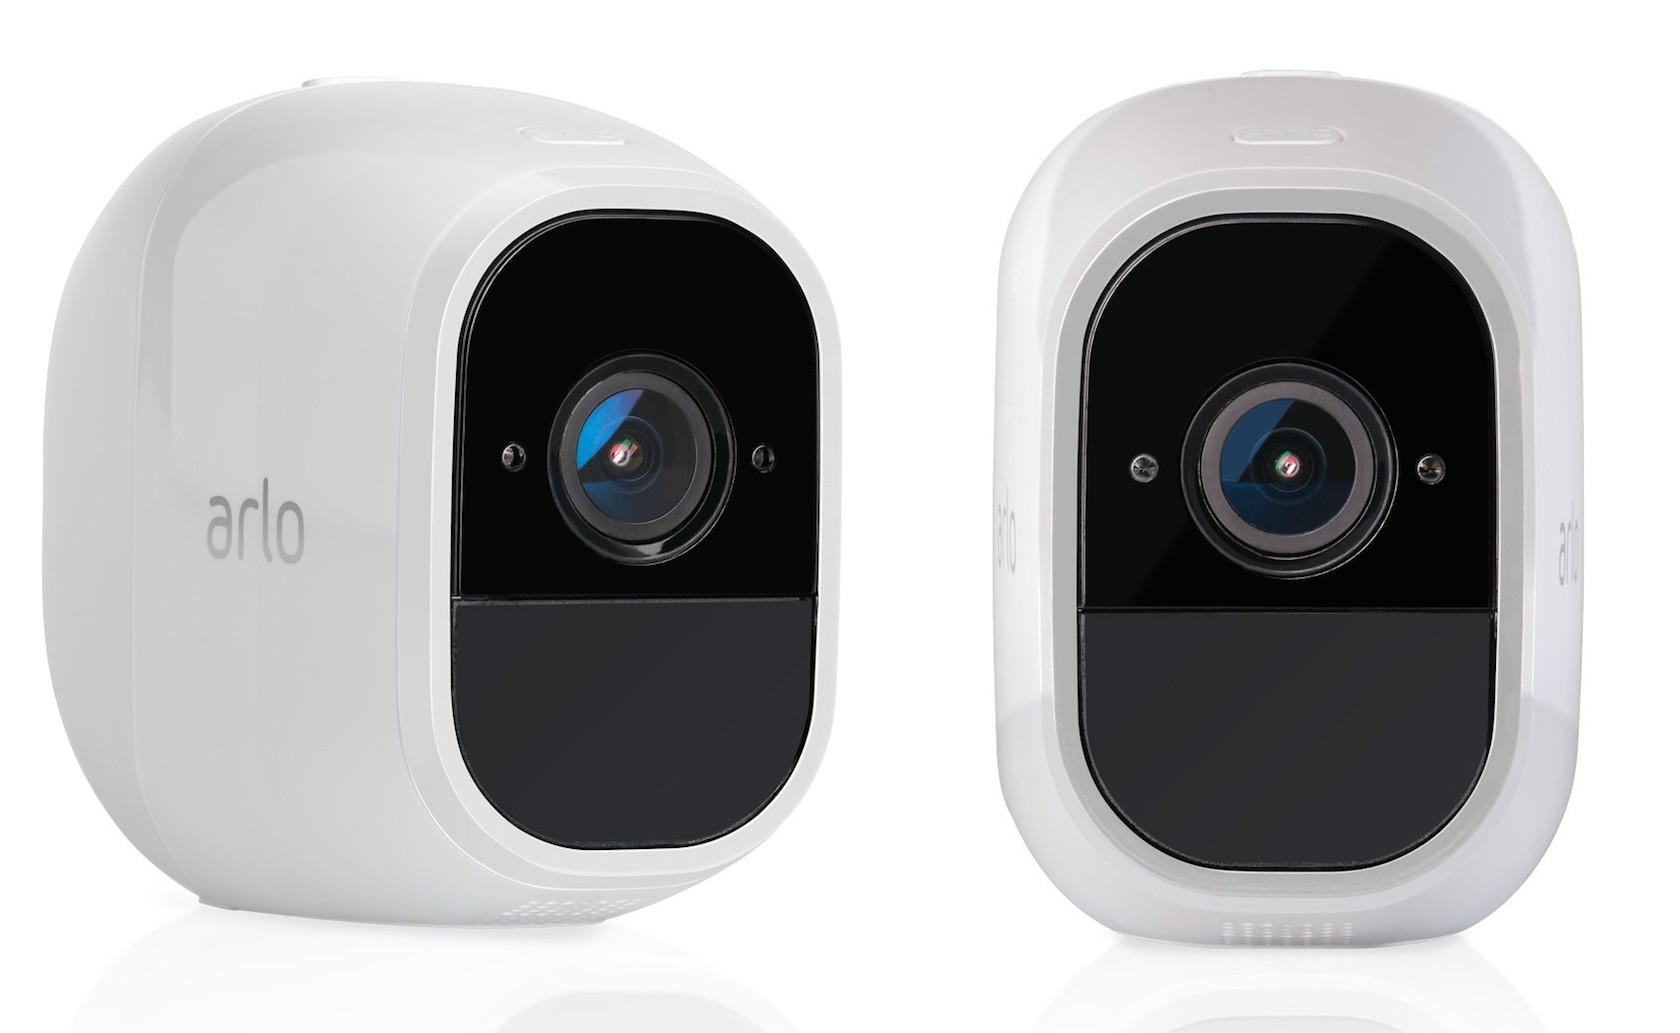 Netgear Arlo Pro 2 packs 1080p, solar option, and Alexa